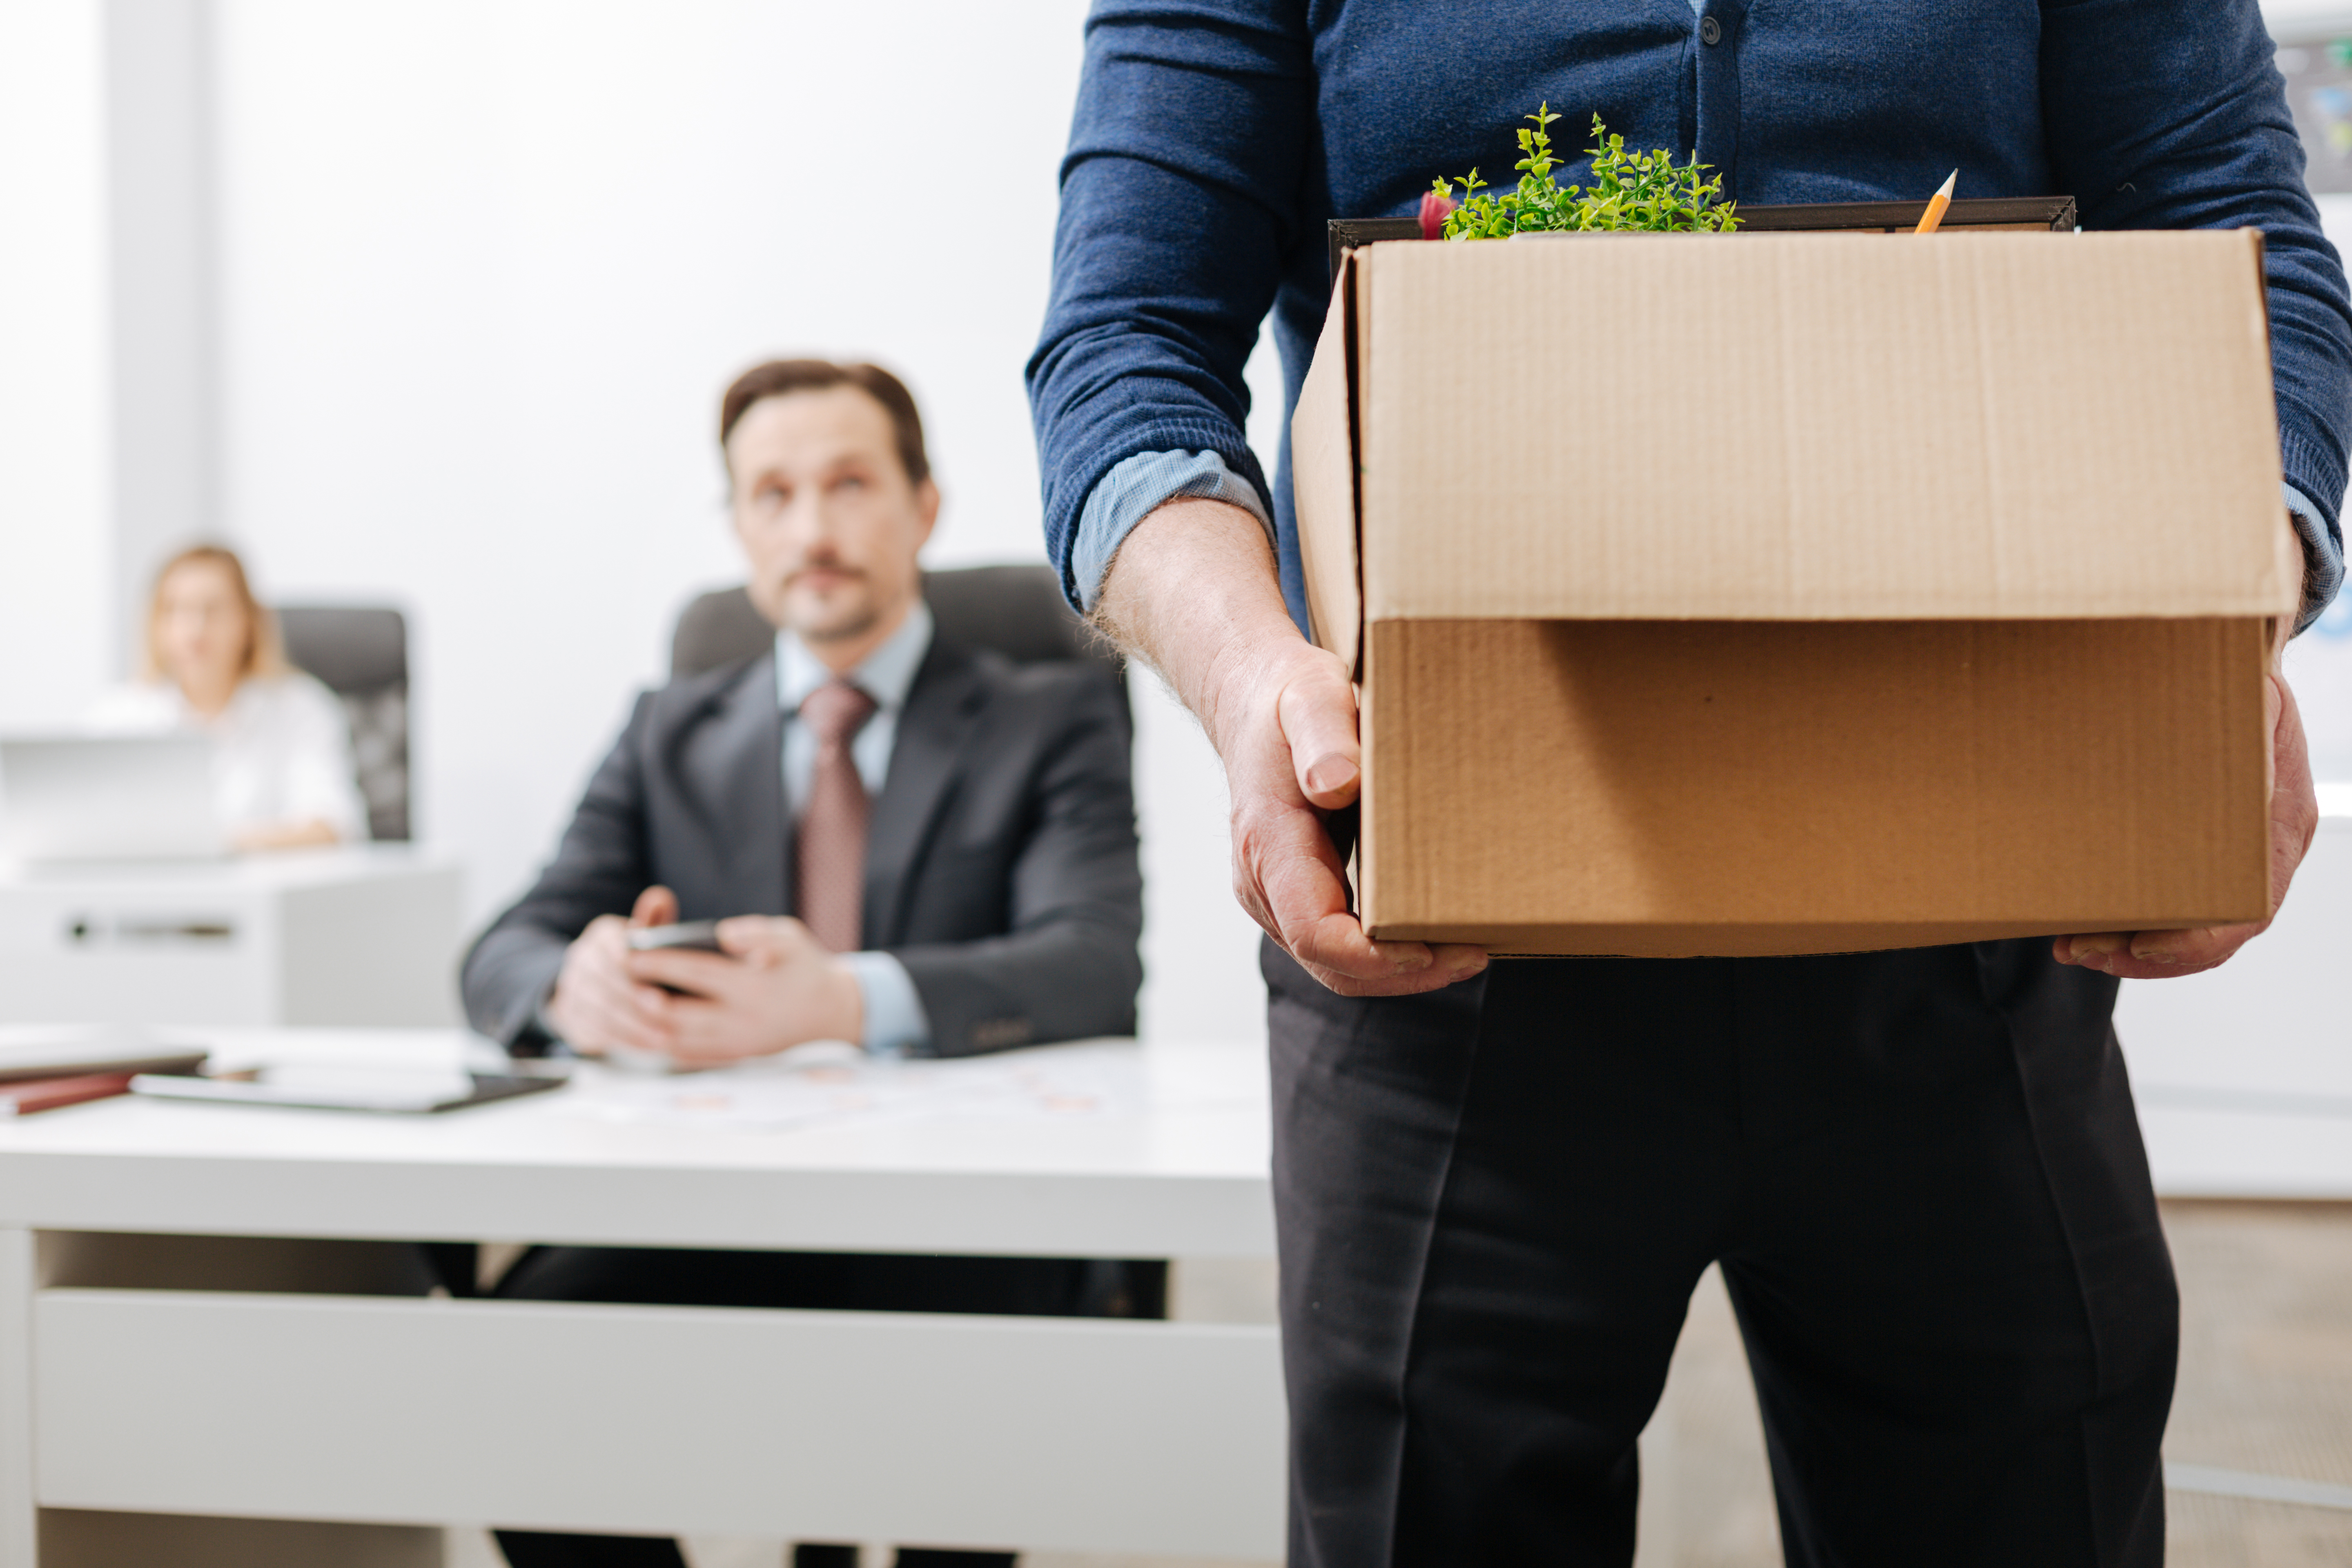 Employee turnover affects companies in all industries, especially manufacturing and distribution. Combat it by increasing employee engagement.